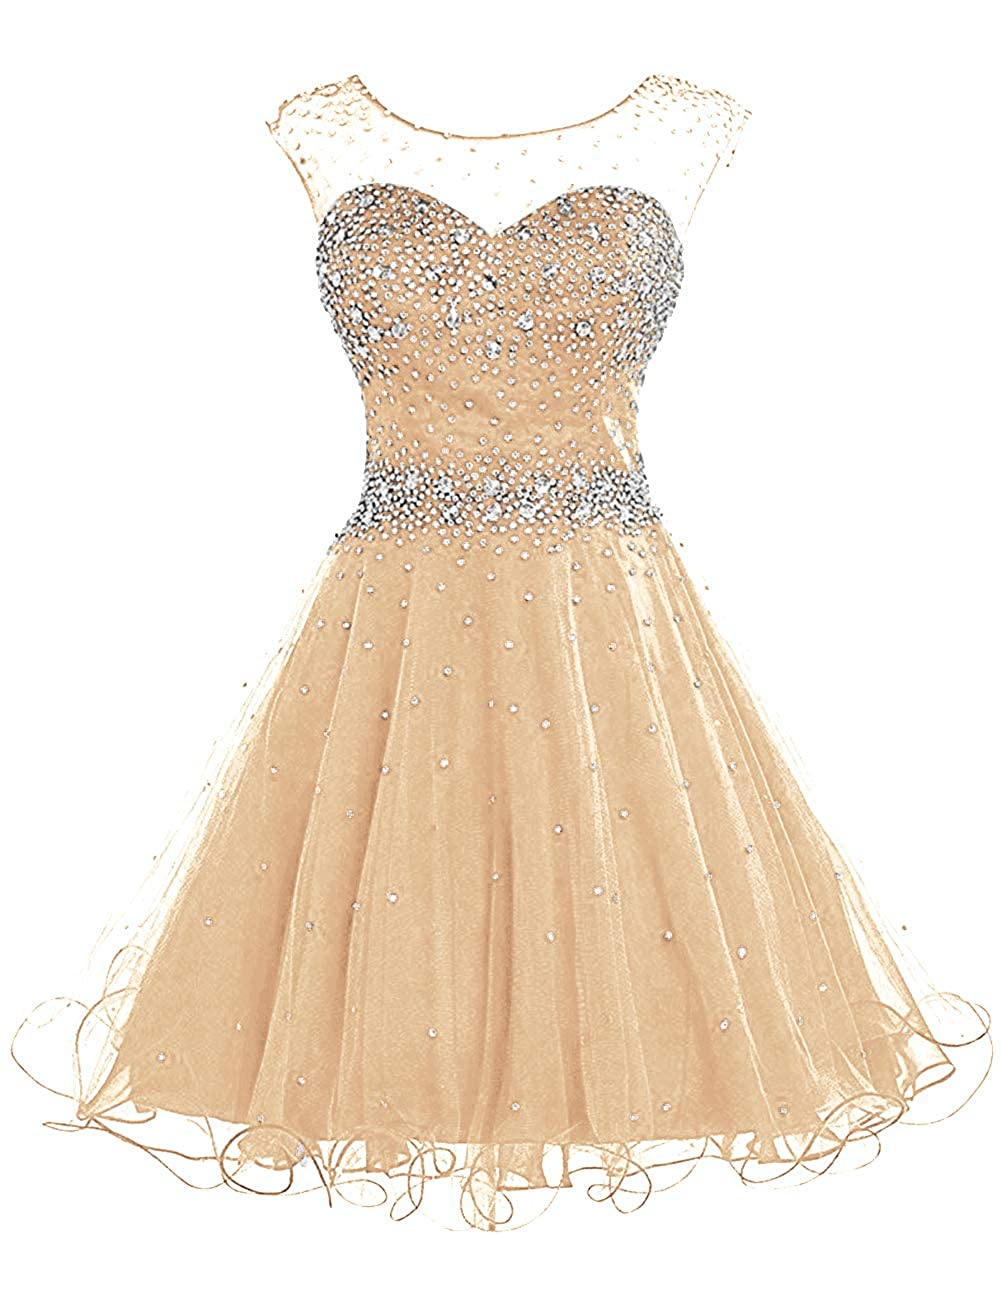 Champagne H.S.D Homecoming Dresses Prom Party Dresses Short Cocktail Dress Beads Graduation Gown